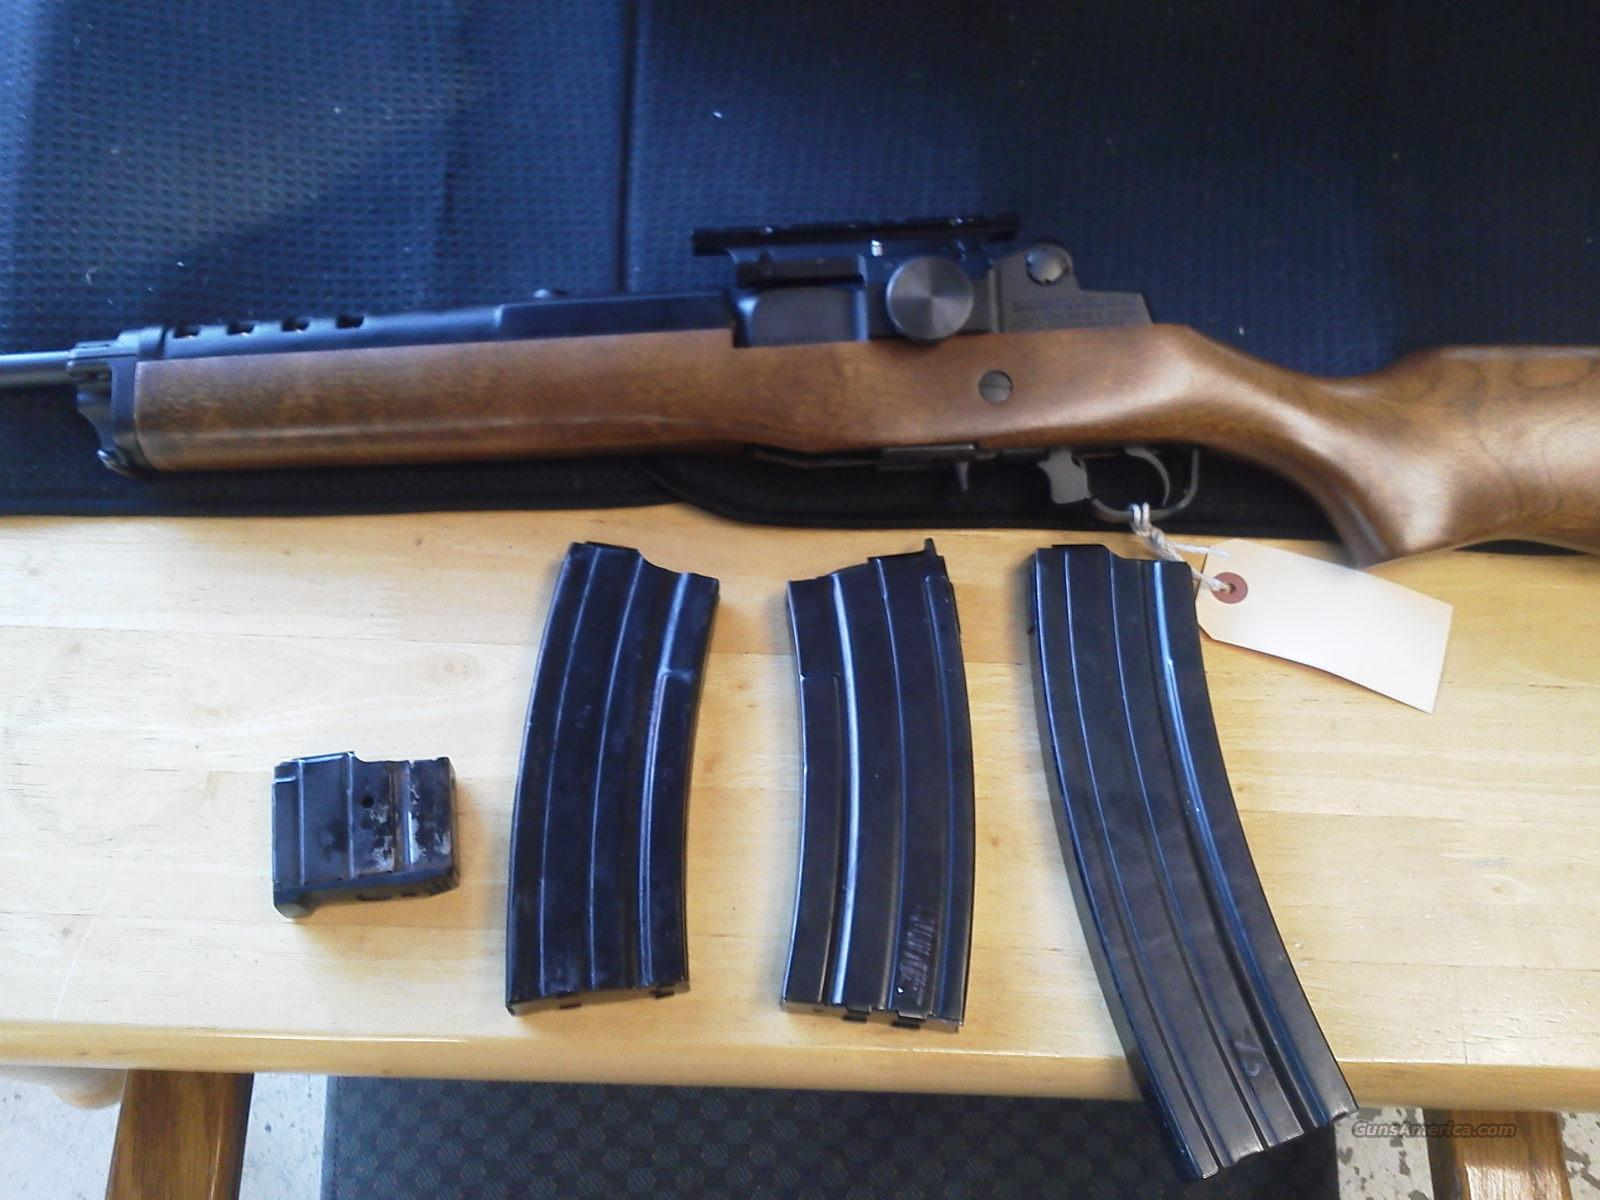 Ruger Mini 14 with mags   Guns > Rifles > Ruger Rifles > Mini-14 Type